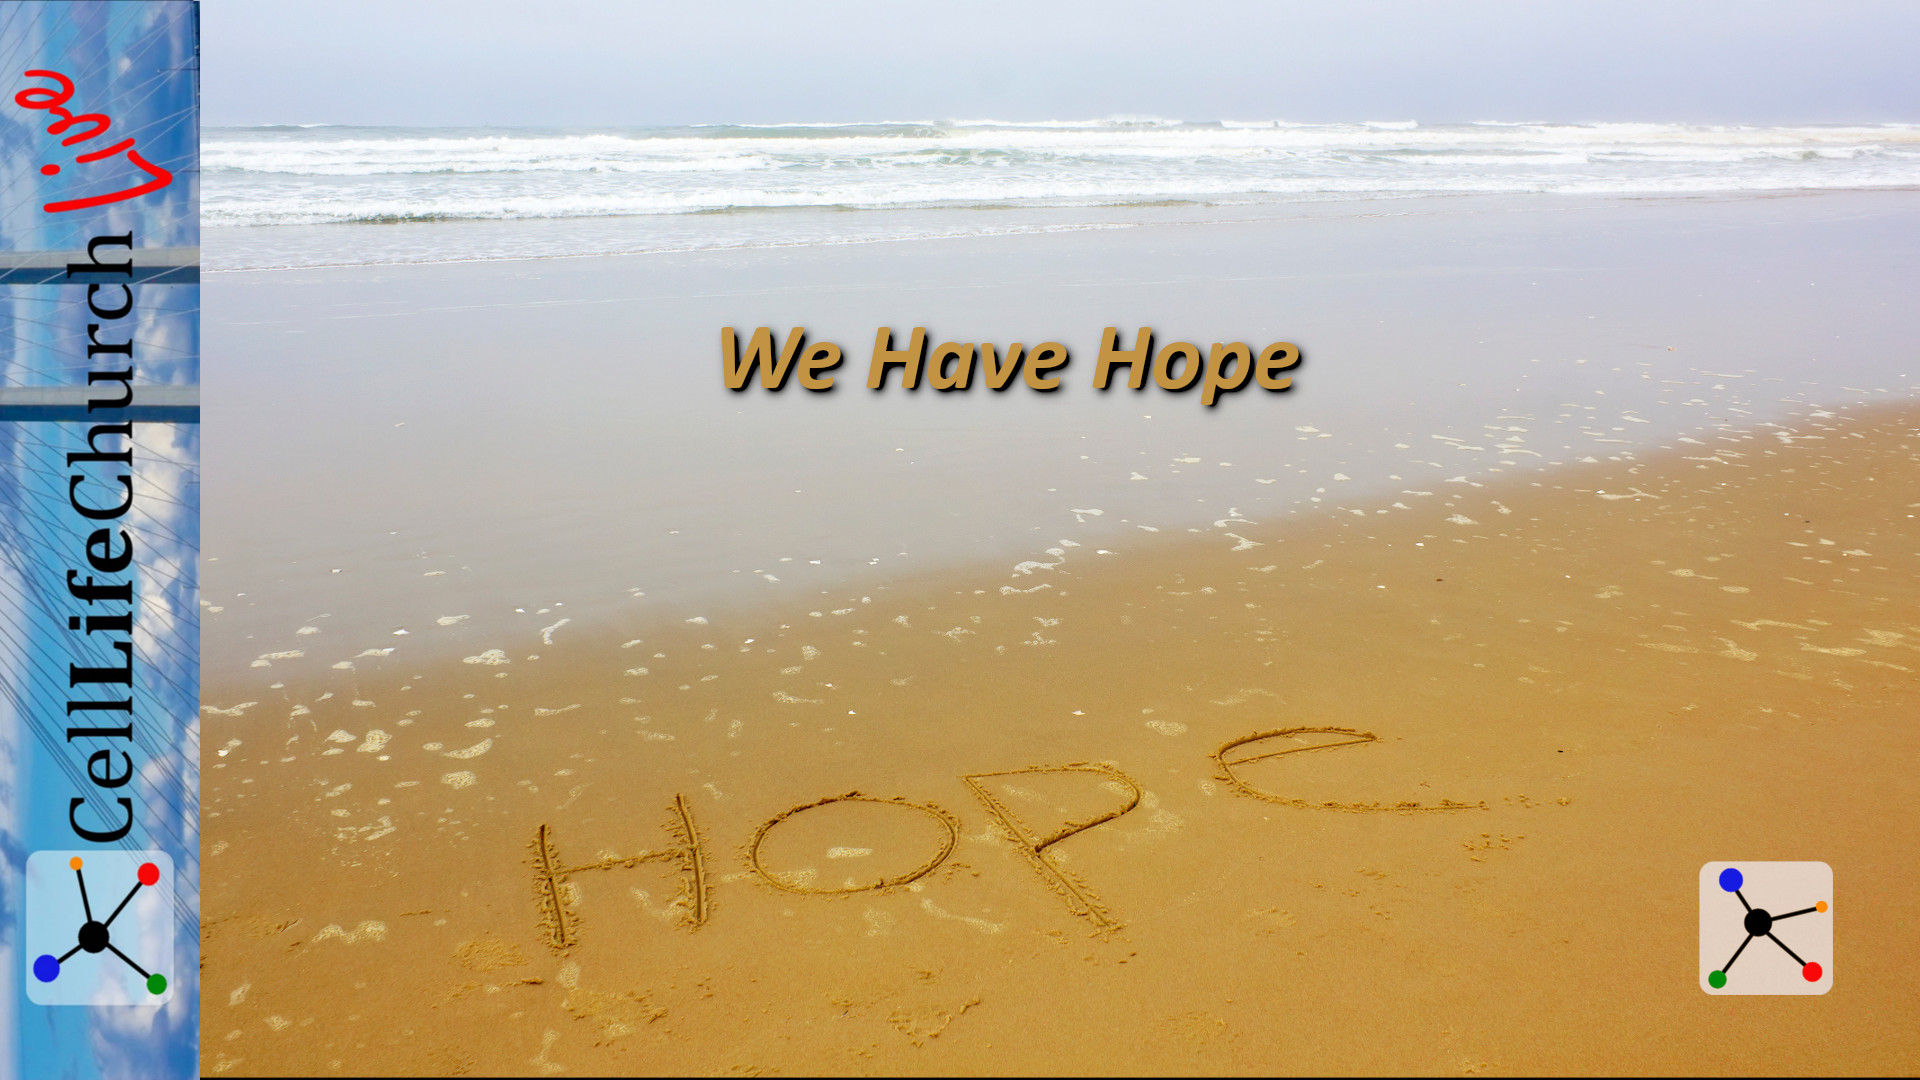 We Have Hope